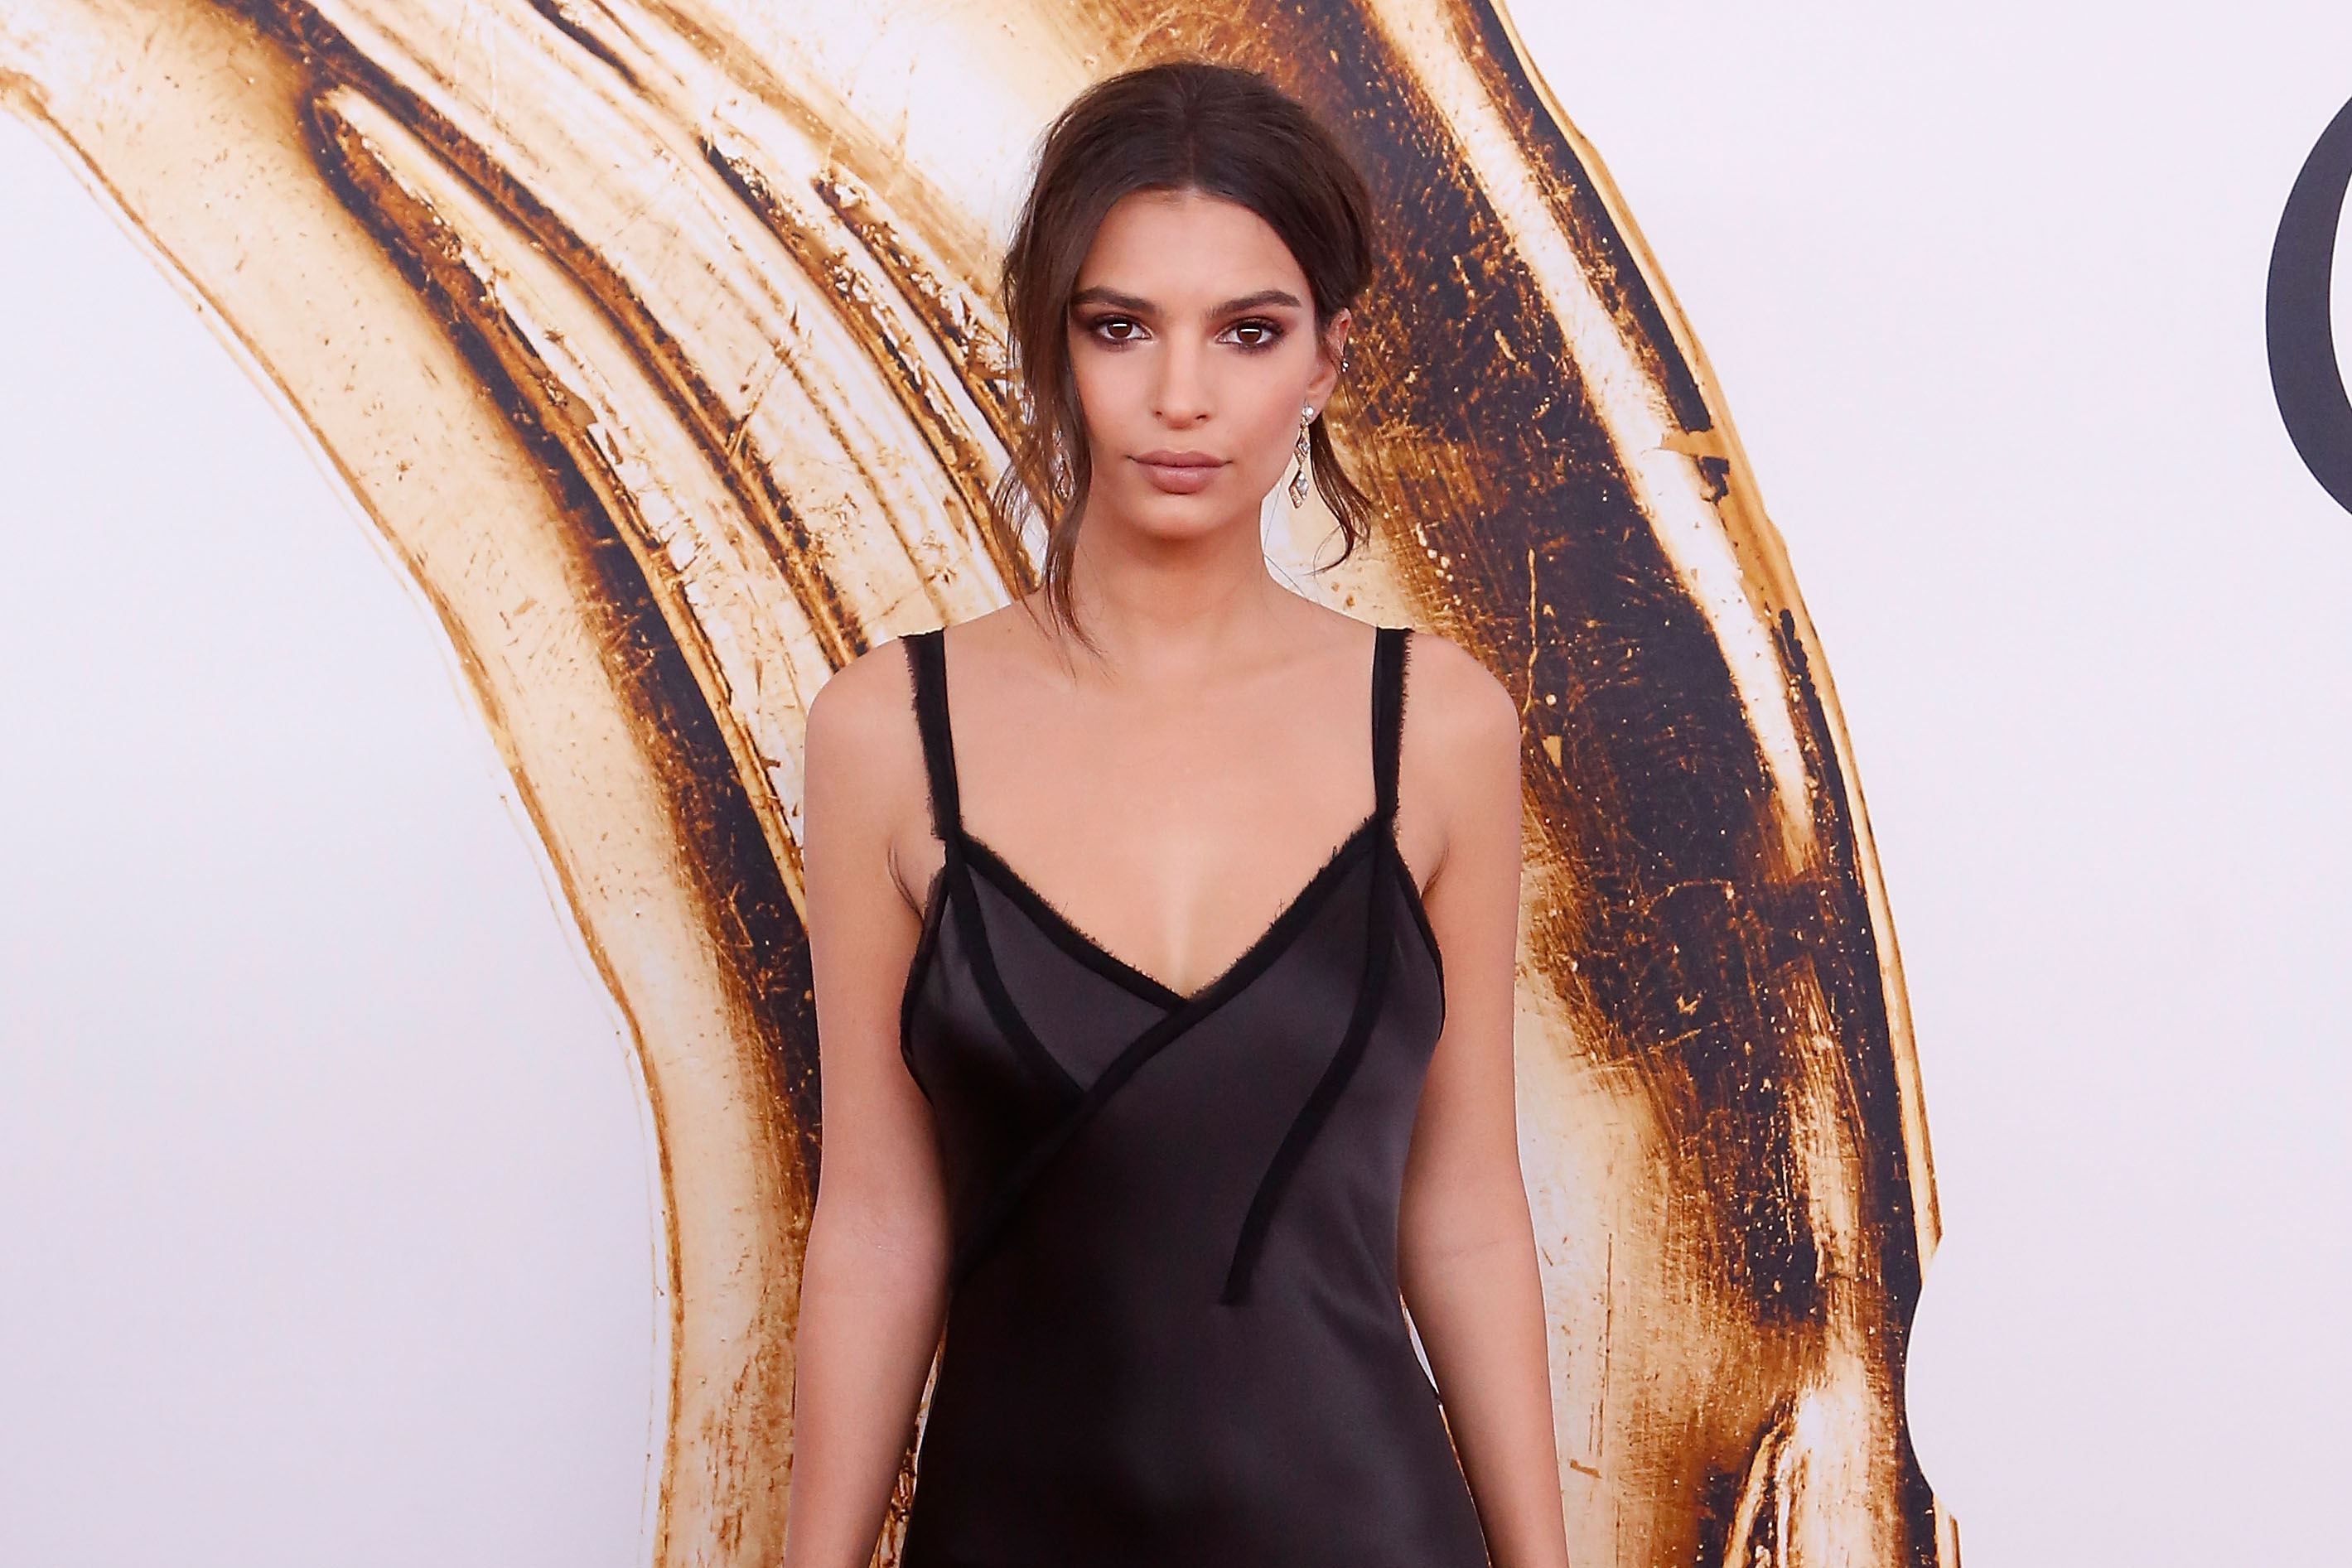 Model Emily Ratajkowski attends the 2016 CFDA Fashion Awards at the Hammerstein Ballroom on June 6, 2016 in New York City.